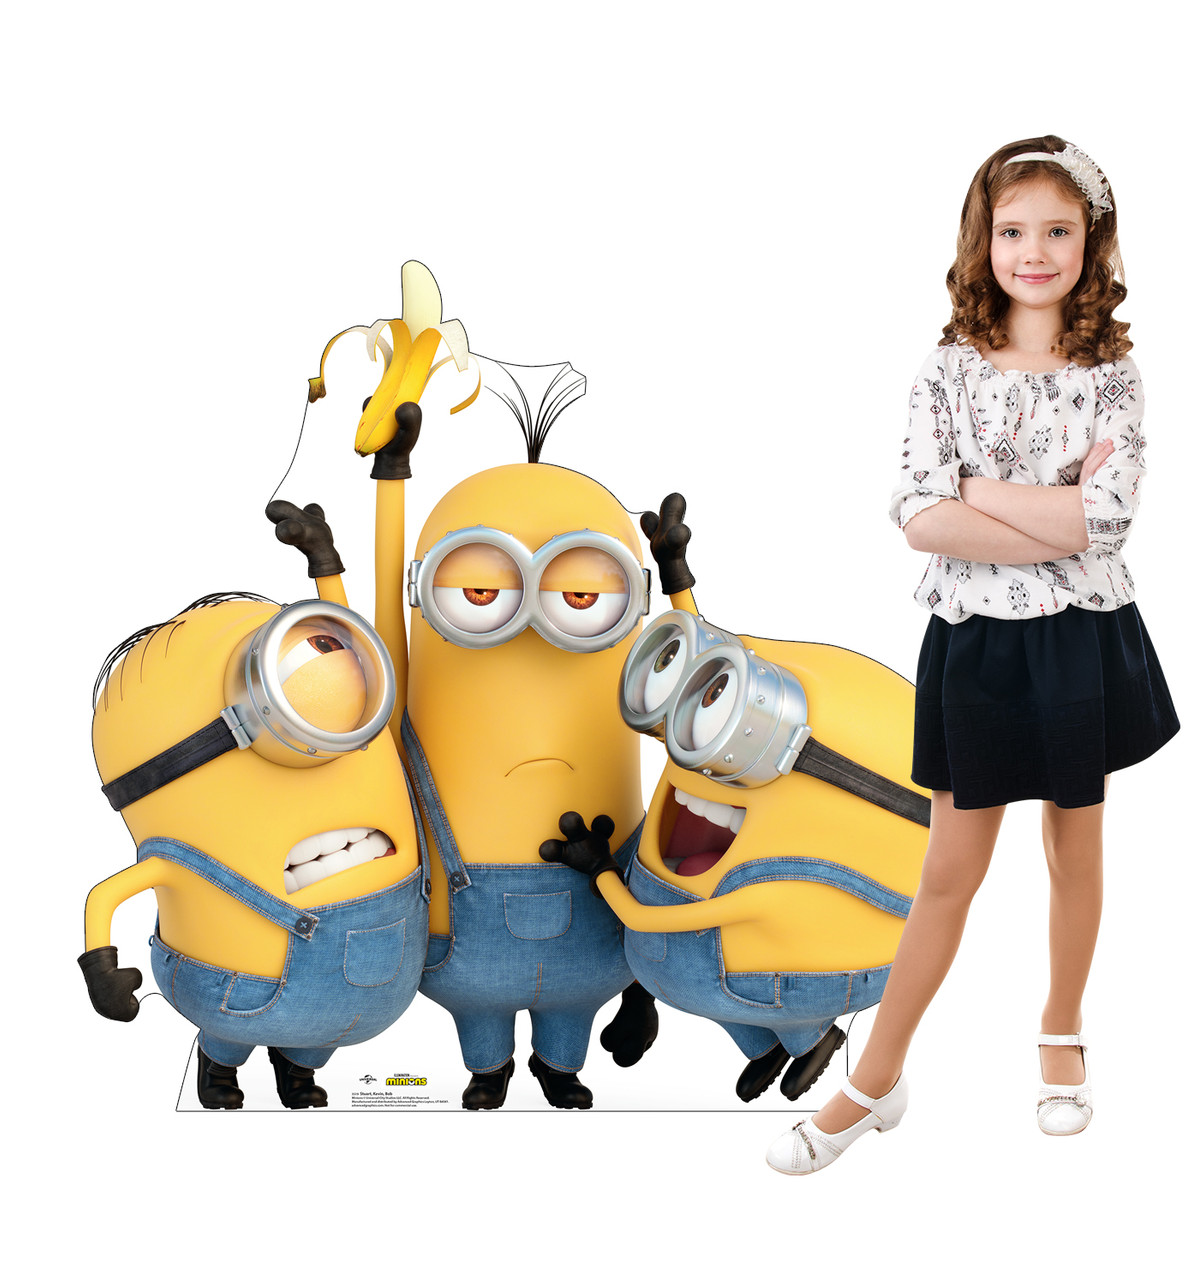 Life-size cardboard standee of Stuart, Kevin & Bob from The Minions with model.